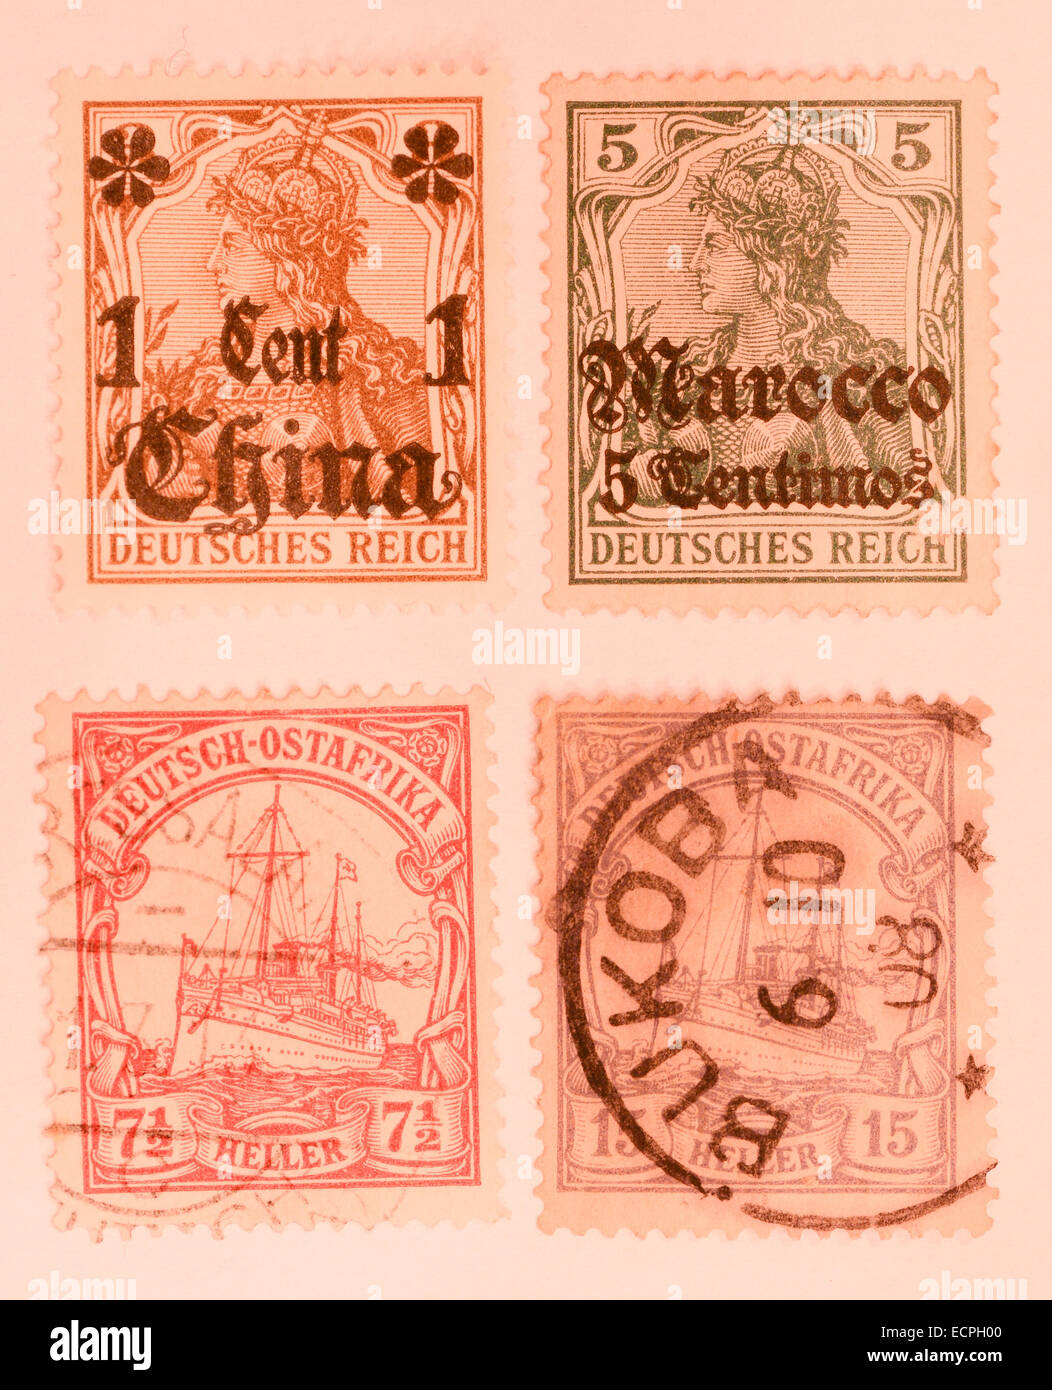 german stamps from second world war - Stock Image